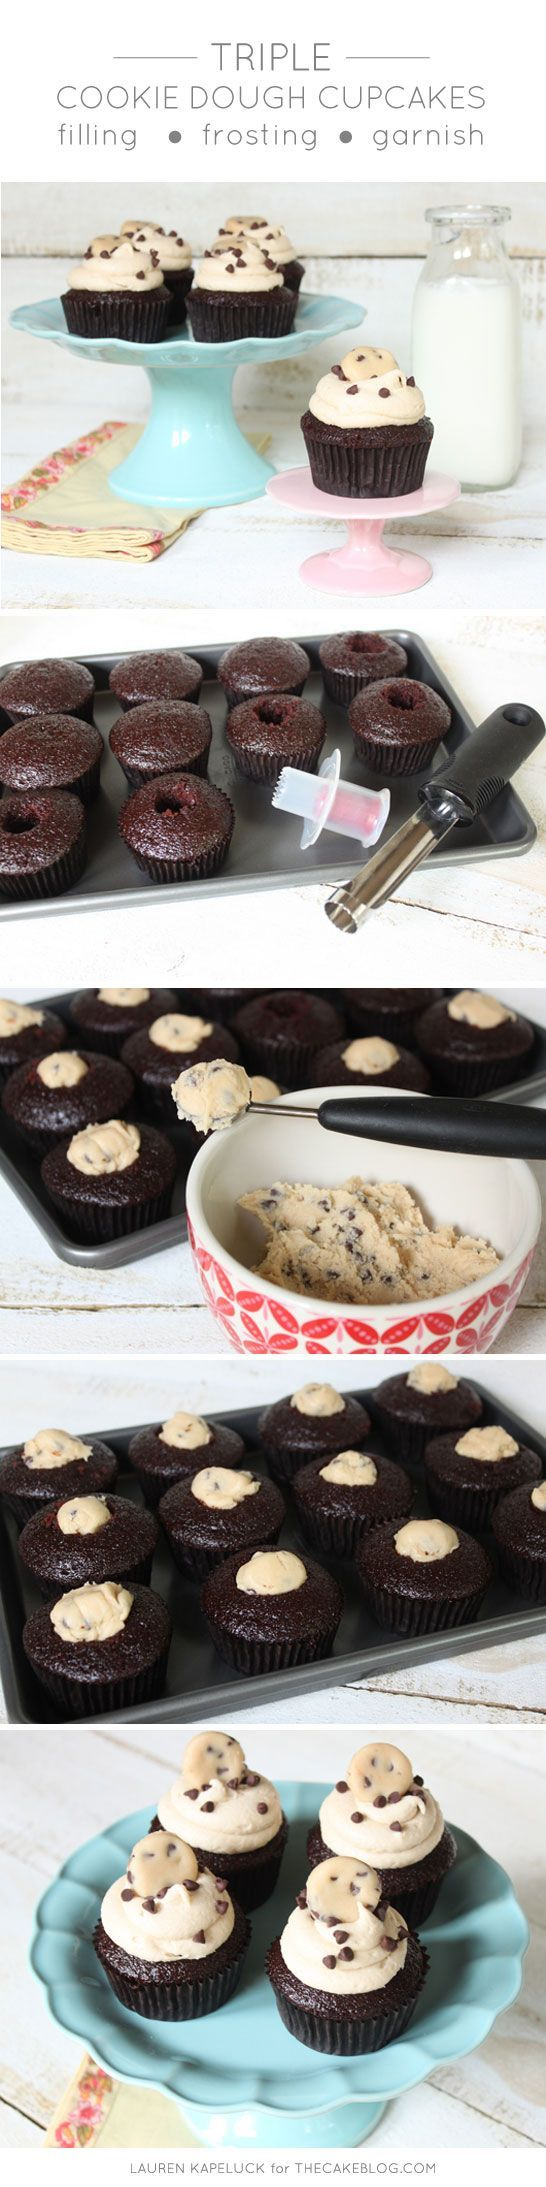 Triple Cookie Dough Cupcakes